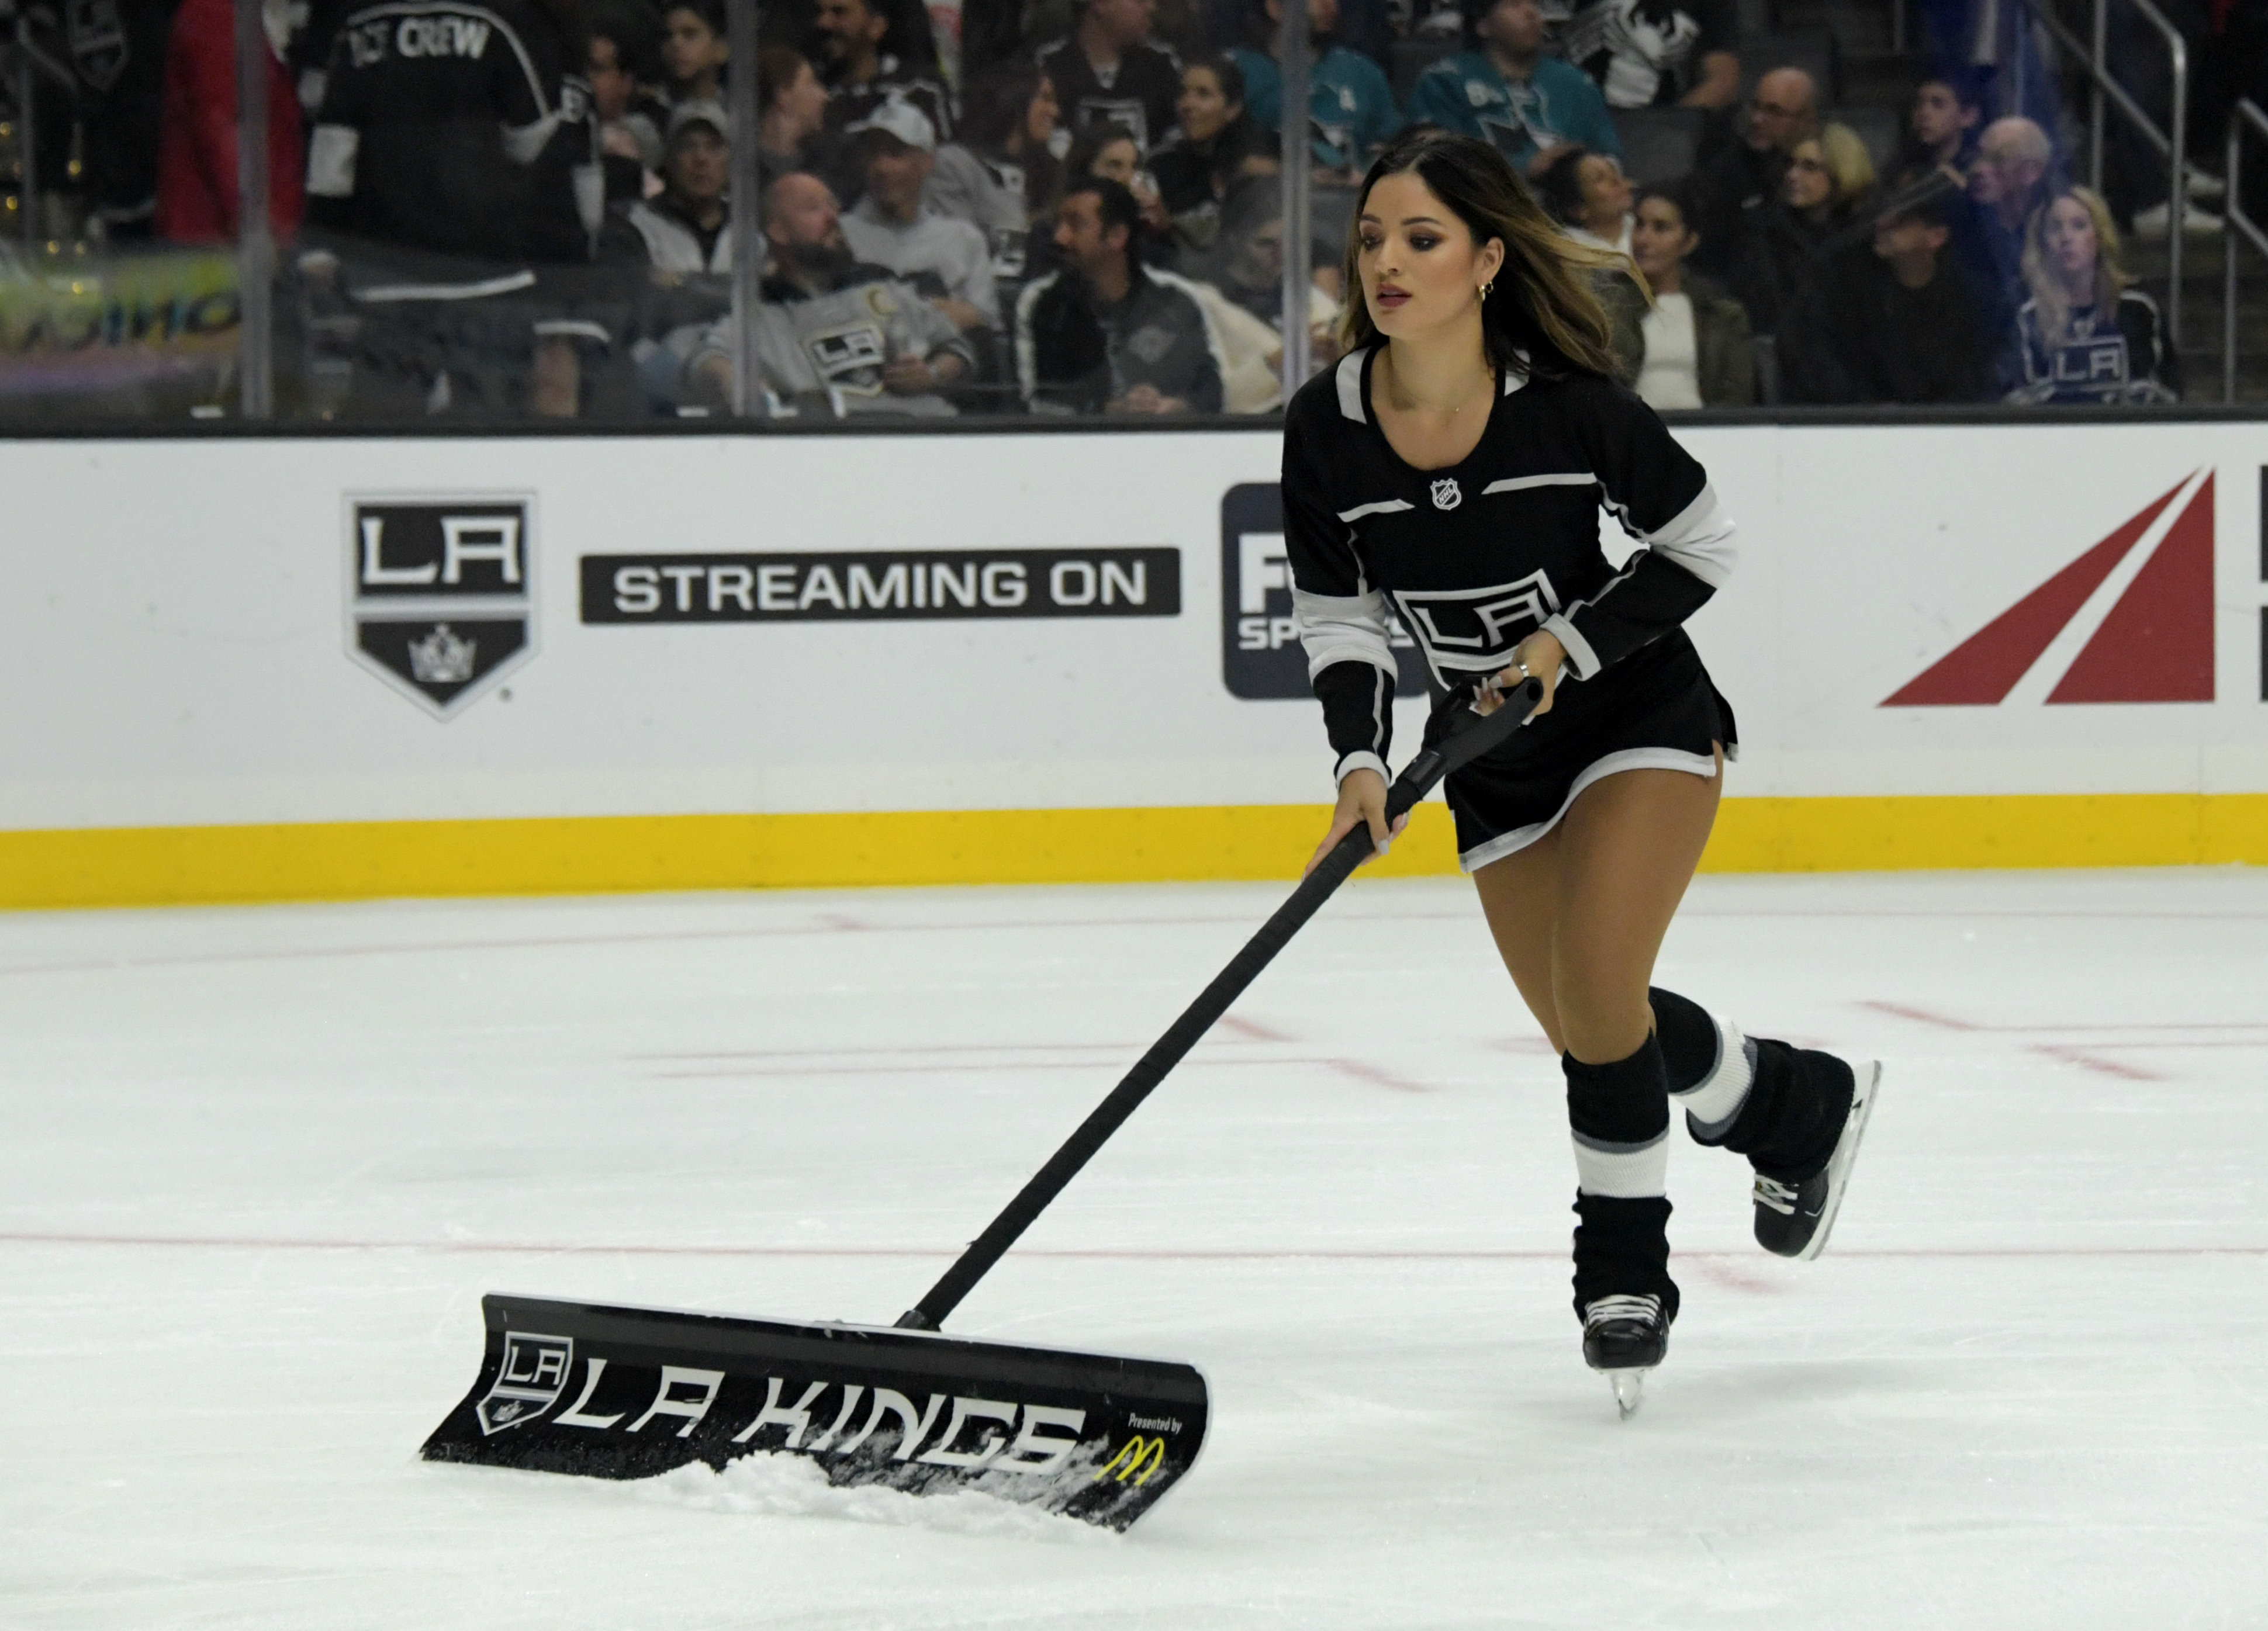 Oct 5, 2018; Los Angeles, CA, USA; Los Angeles Kings ice girl Pamela Rebora clears the surface in the first period against San Jose Sharks at Staples Center. Mandatory Credit: Kirby Lee-USA TODAY Sports